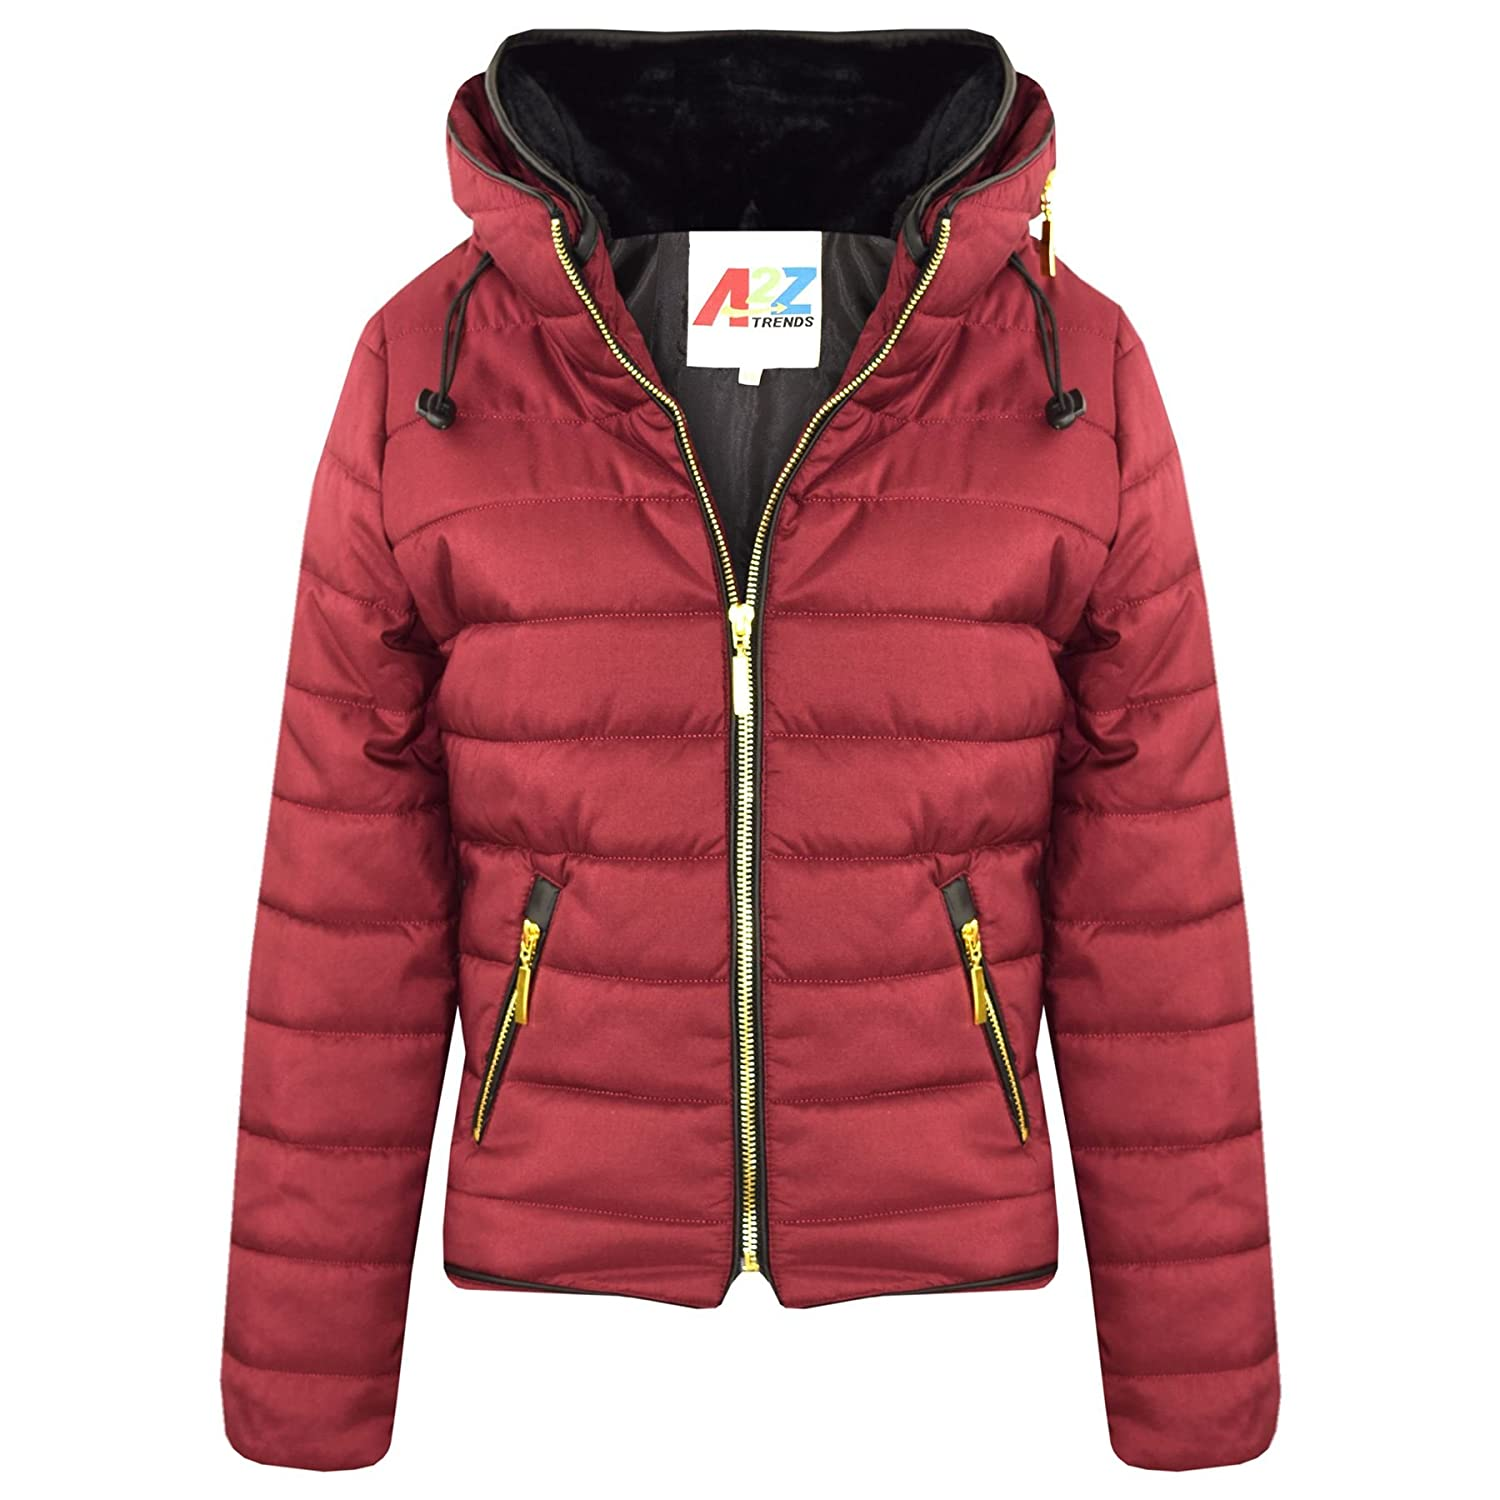 A2Z 4 Kids® Girls Jacket Kids Stylish Padded Puffer Bubble Faux Fur Collar Quilted Warm Thick Coat Jackets Age 3 4 5 6 7 8 9 10 11 12 13 Years